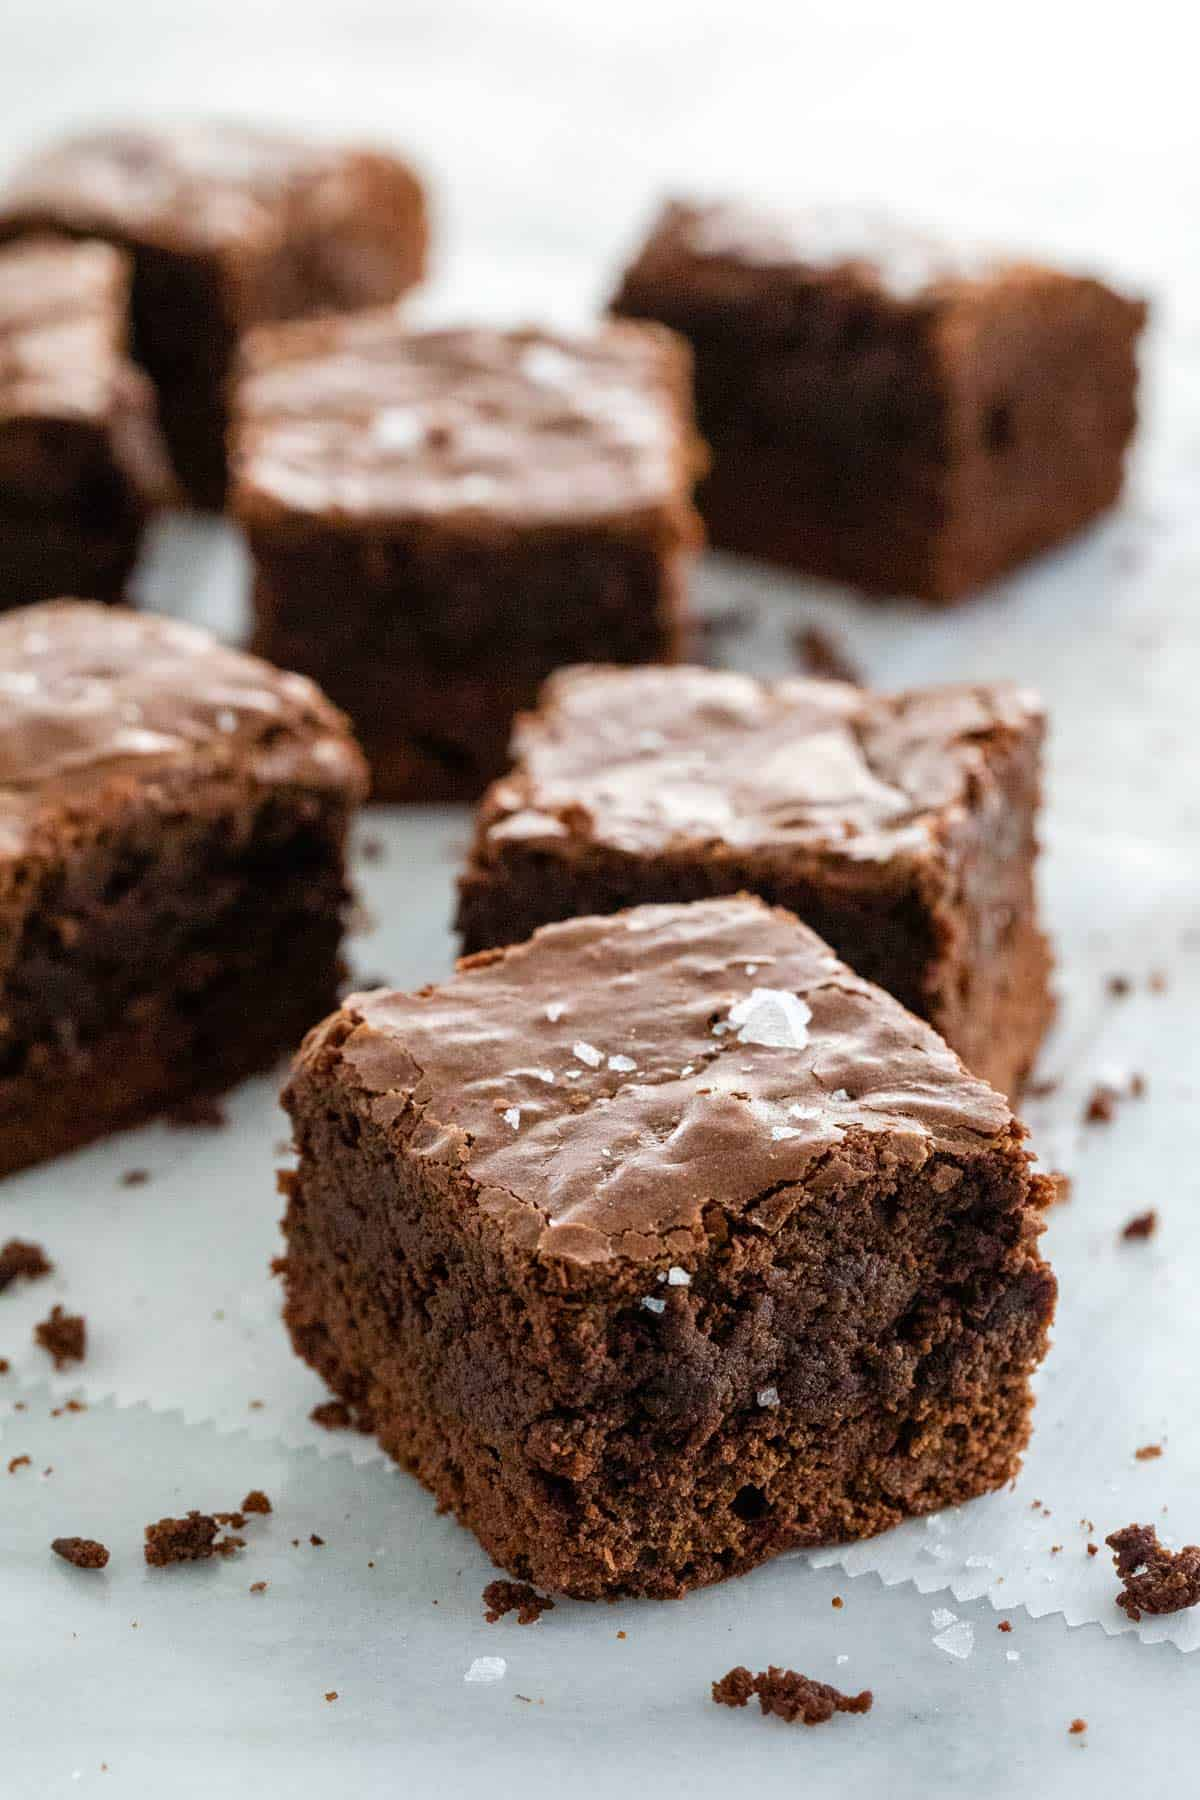 A recipe for decadent fudgy brownies that deliver intense cocoa flavor in every bite! Your friends and family will be demanding you make these again! #brownies #fudgybrownies #homemadebrownies